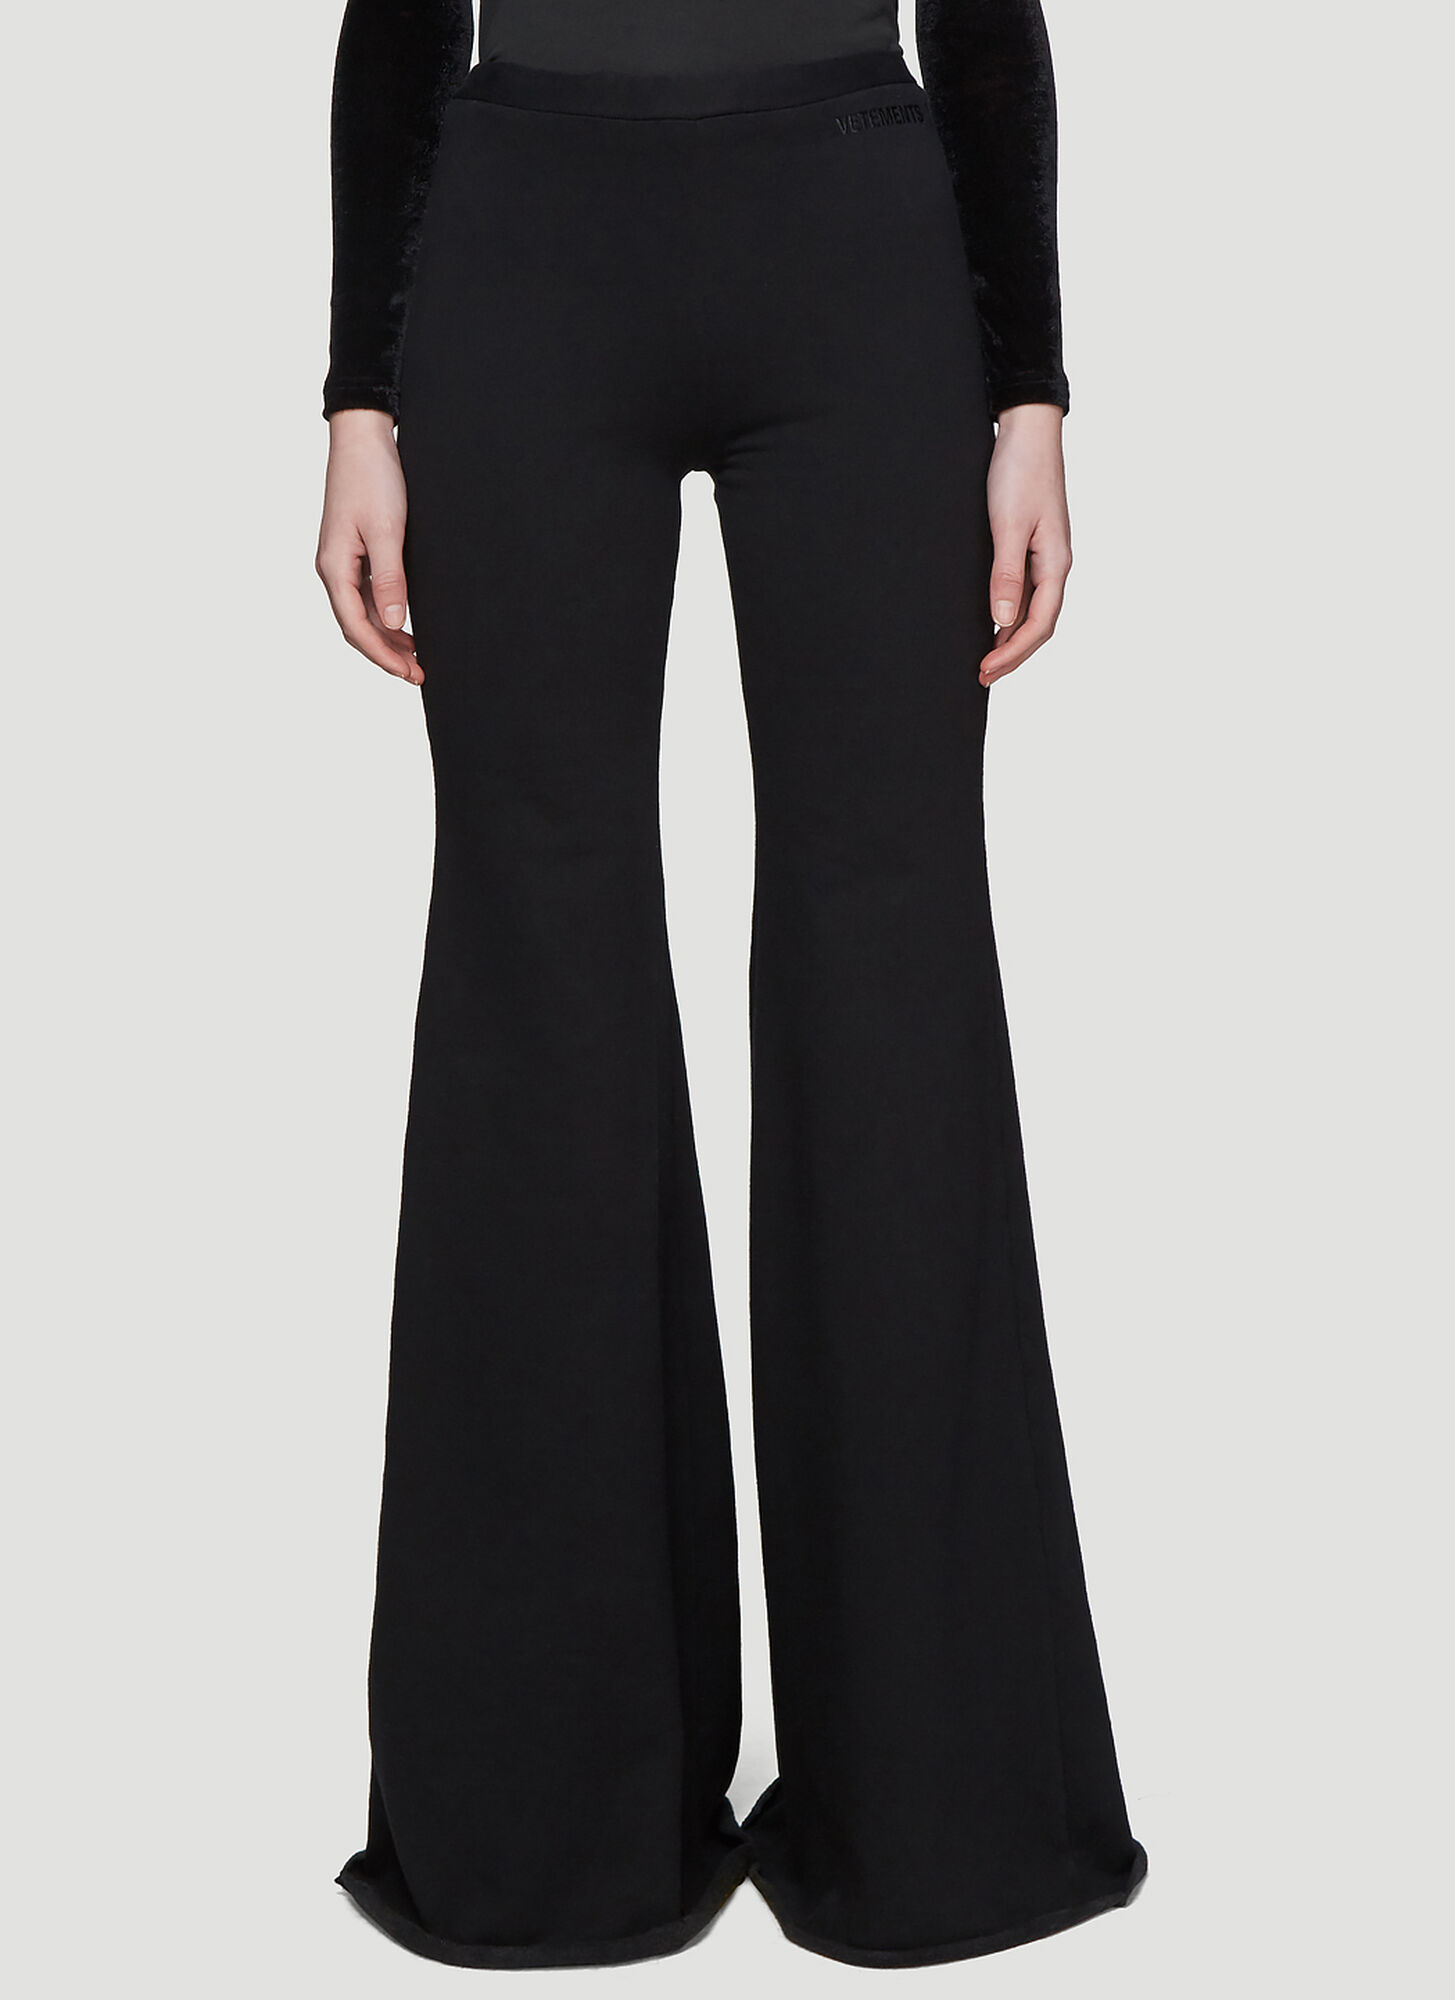 Vetements Evening Jogging Pants in Black